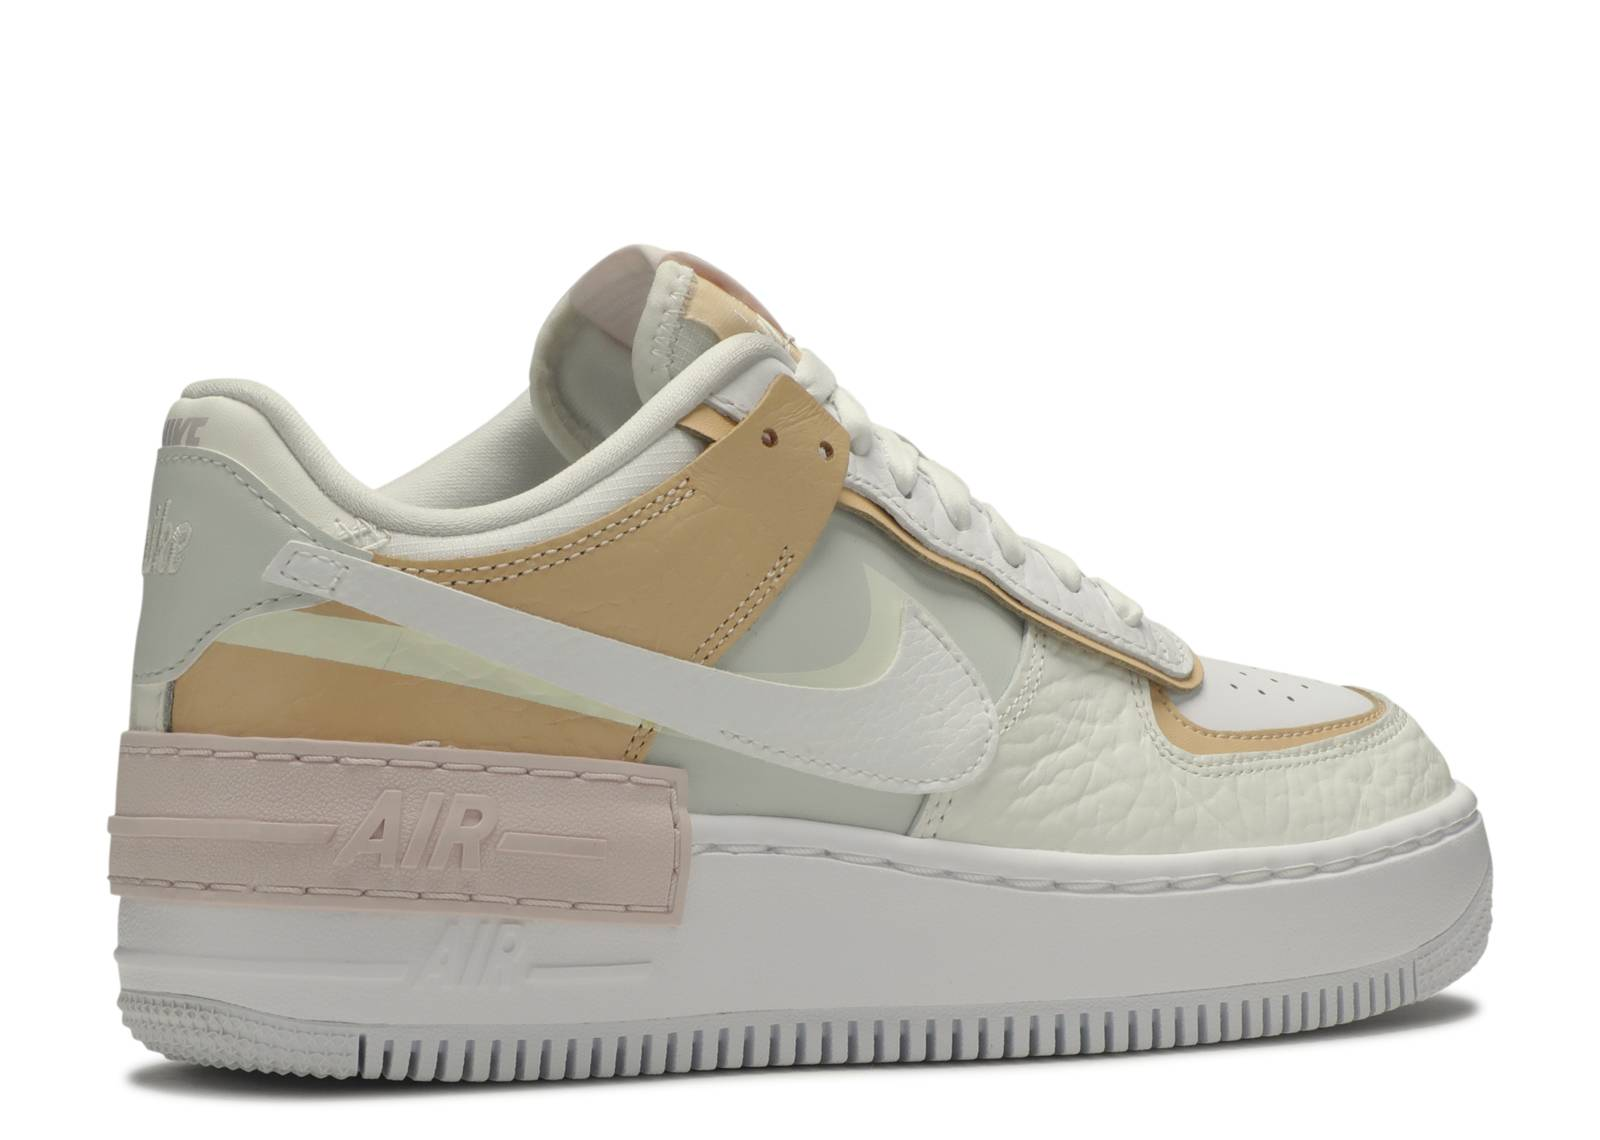 Wmns Air Force 1 Shadow Se Spruce Aura Nike Ck3172 002 Spruce Aura Sail Black White Flight Club